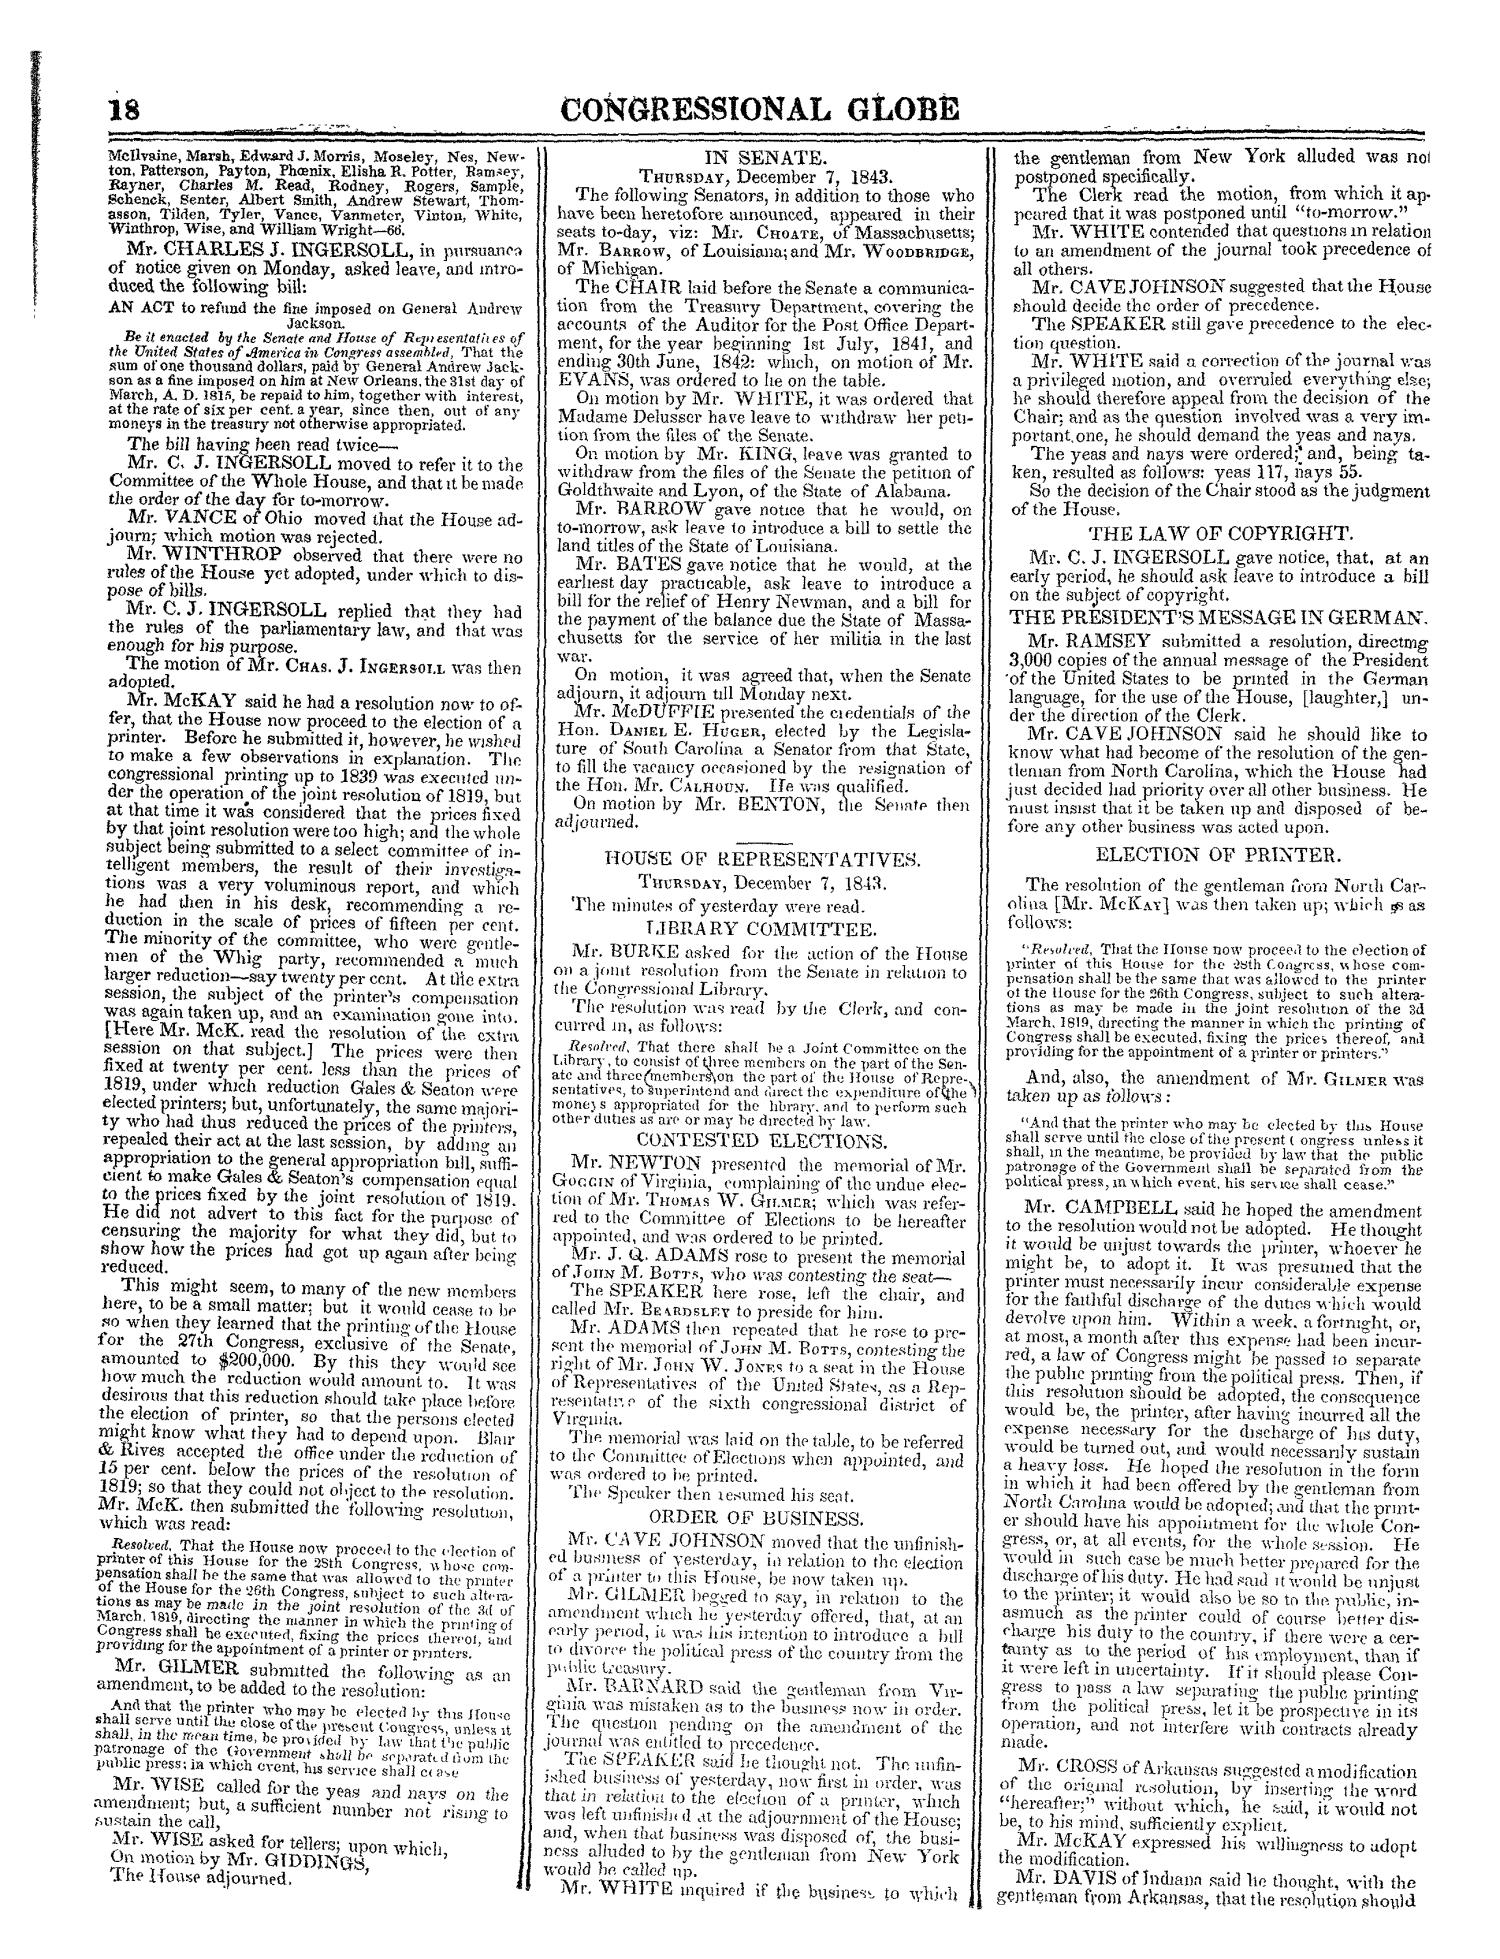 The Congressional Globe, Volume 13, Part 1: Twenty-Eighth Congress, First Session                                                                                                      18